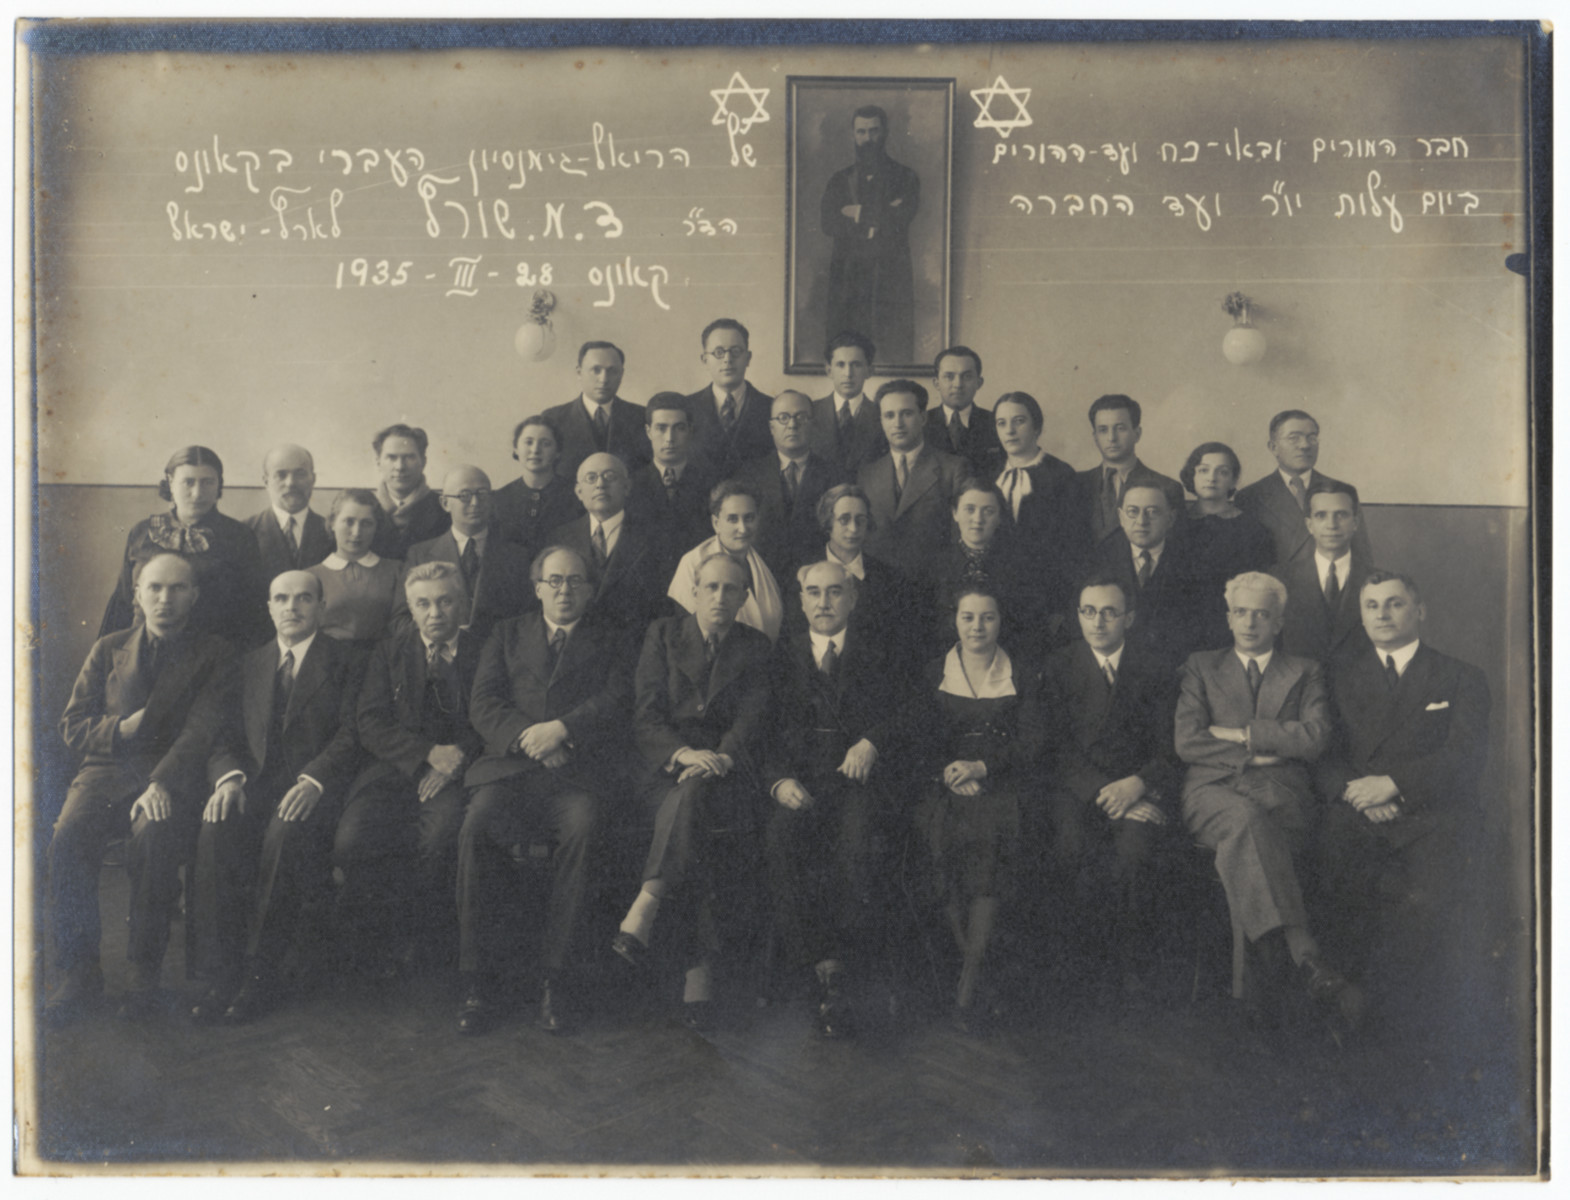 Group portrait of the faculty and board members of the Real Gymnasium in Kaunas.  Among those pictured are Leo Aryeh Zeidel (first row, second from the right) who was a representative of the parents' committee.  Second row: Yavetz (the gym teacher, far right); Mrs. Miller (third from the right).  Third row: Dr. Kissim (the science teacher who died in Dachau, far right), Lena Rachmilevitch (second from right).  Also, Dr. Swartz, Dr. Feldstein (the director of the school), Natan Greenblat and Dr. Junblanski.